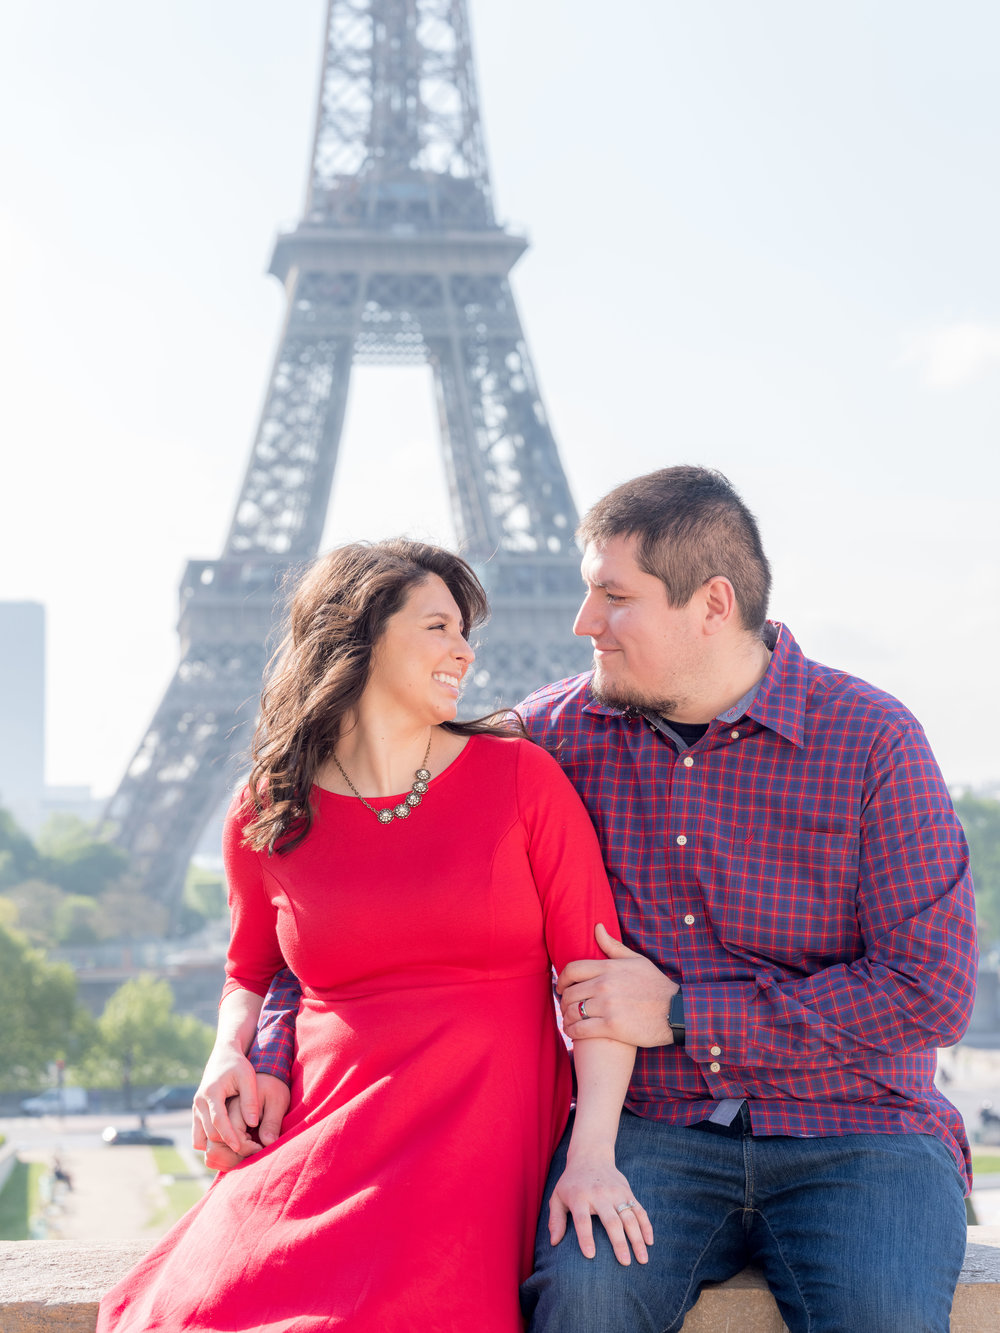 family photography at the eiffel tower in paris france